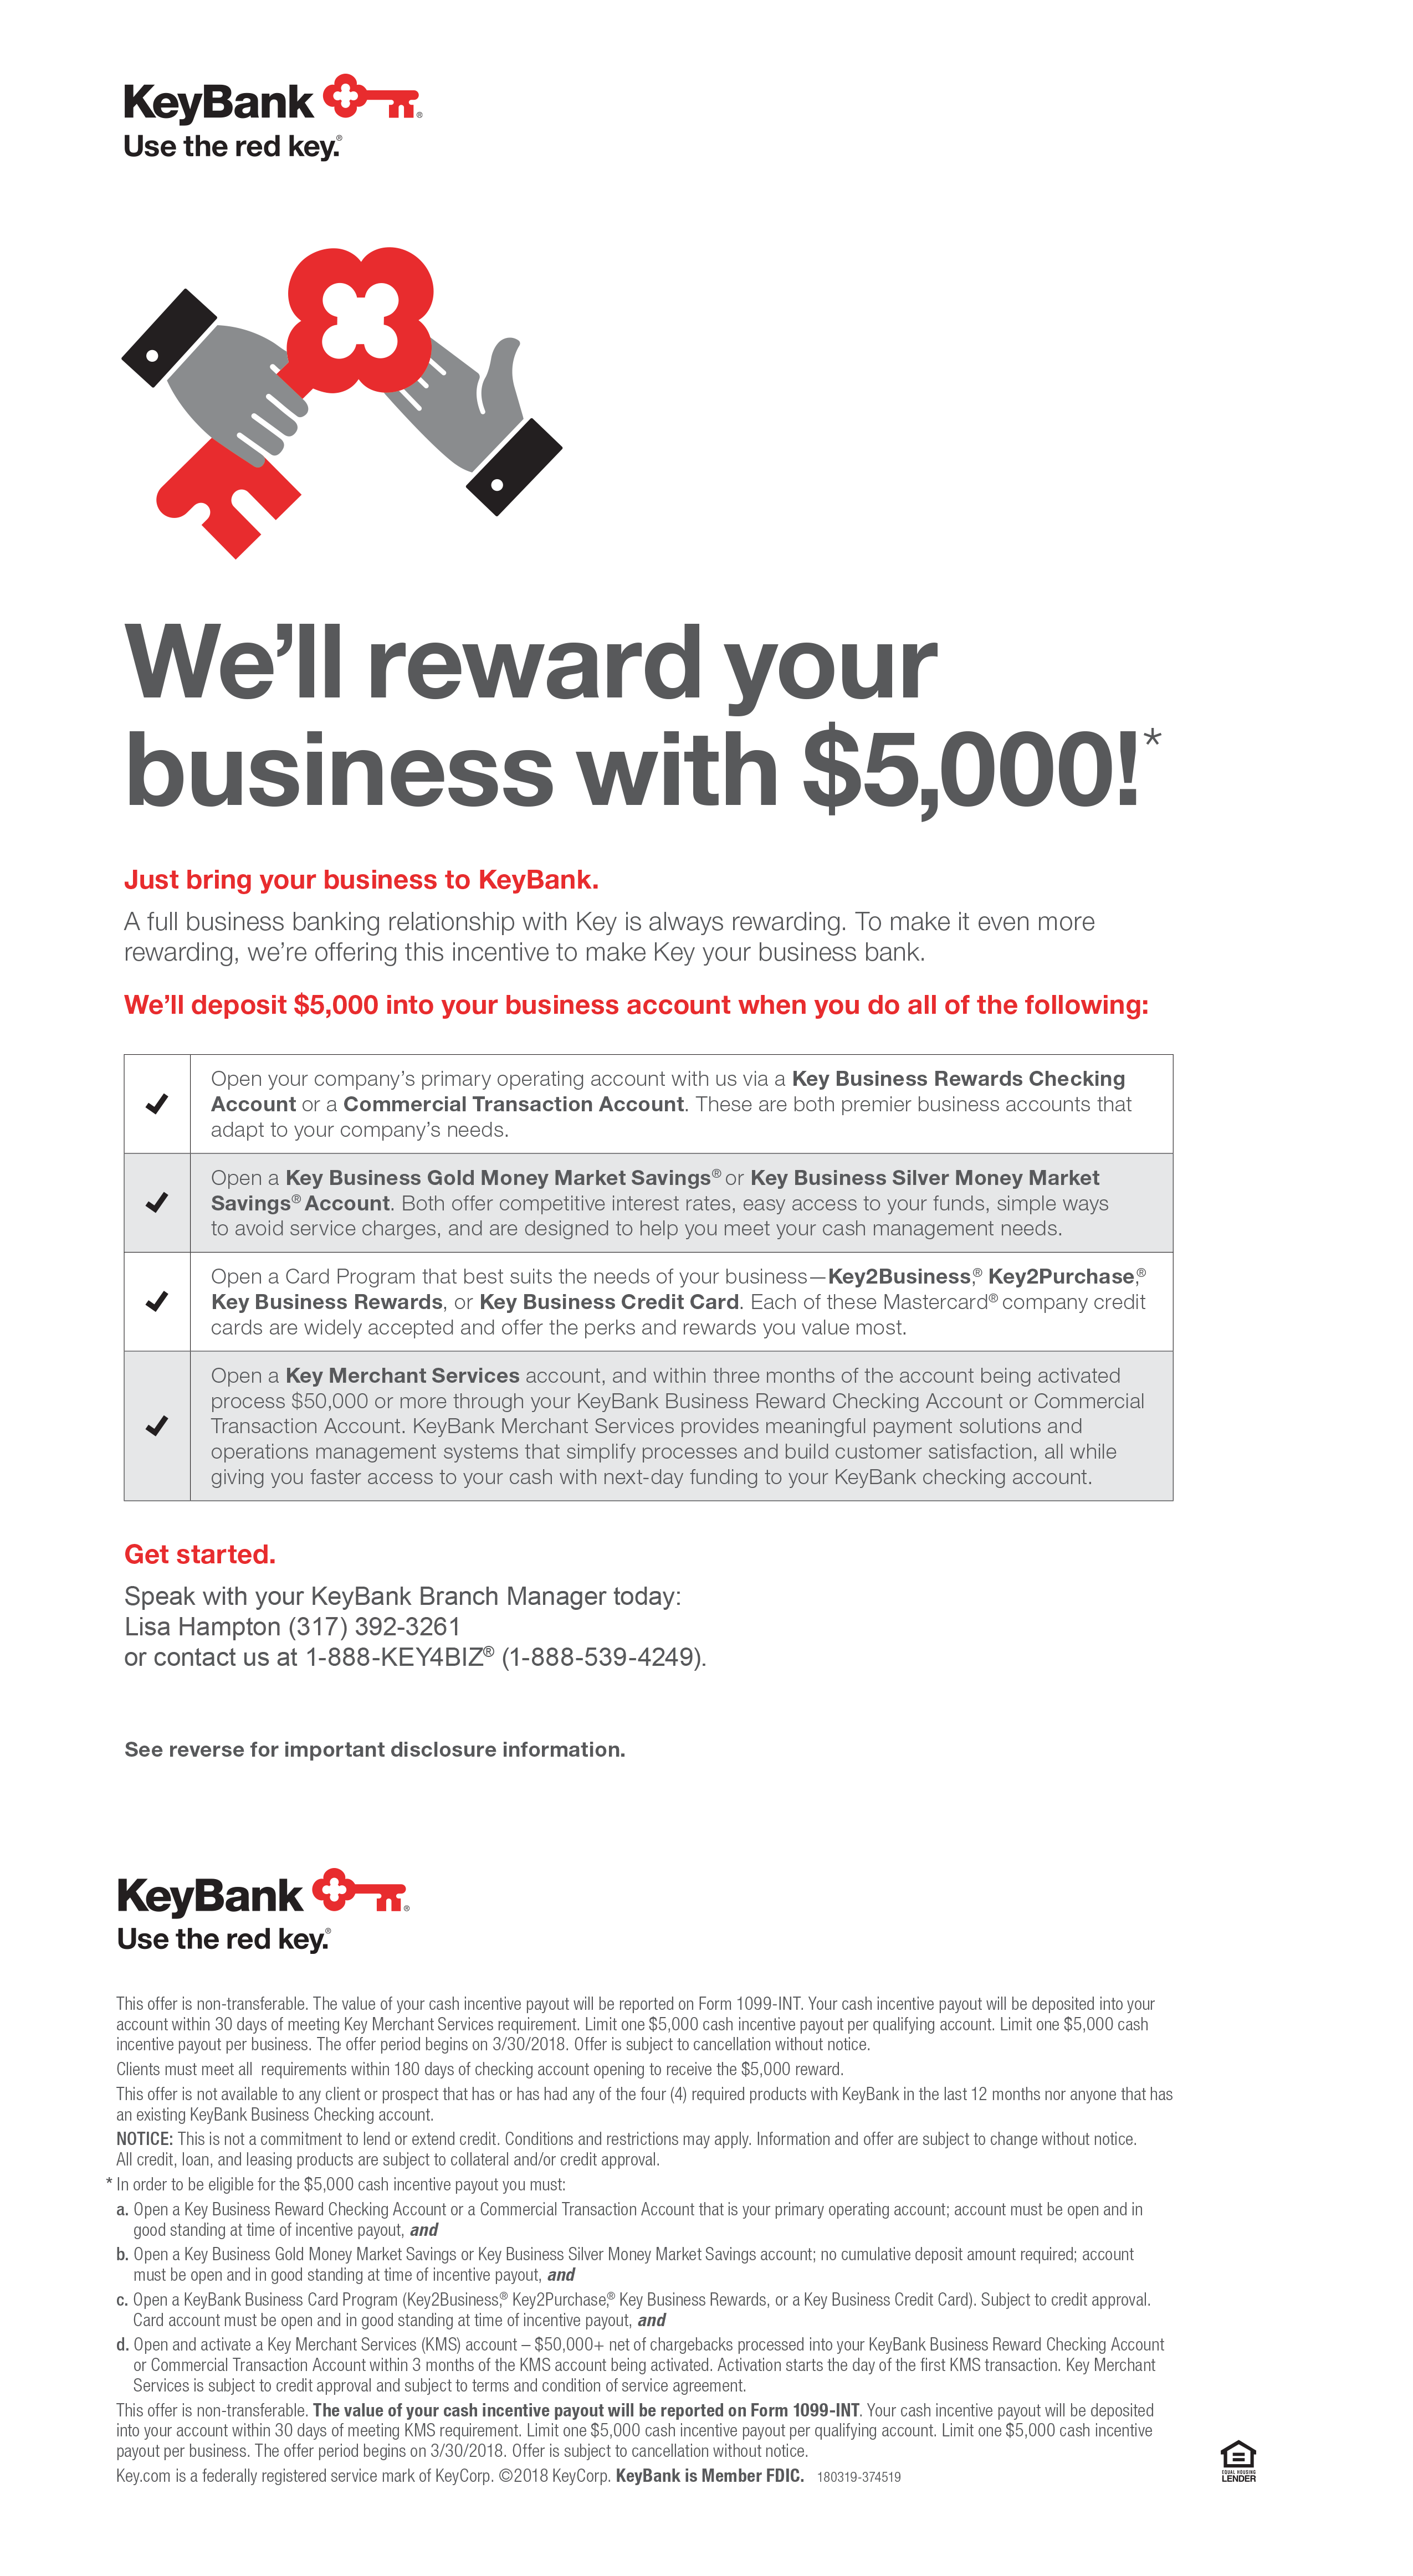 Keybank well reward your business with 5000 shelby county keybank well reward your business with 5000 colourmoves